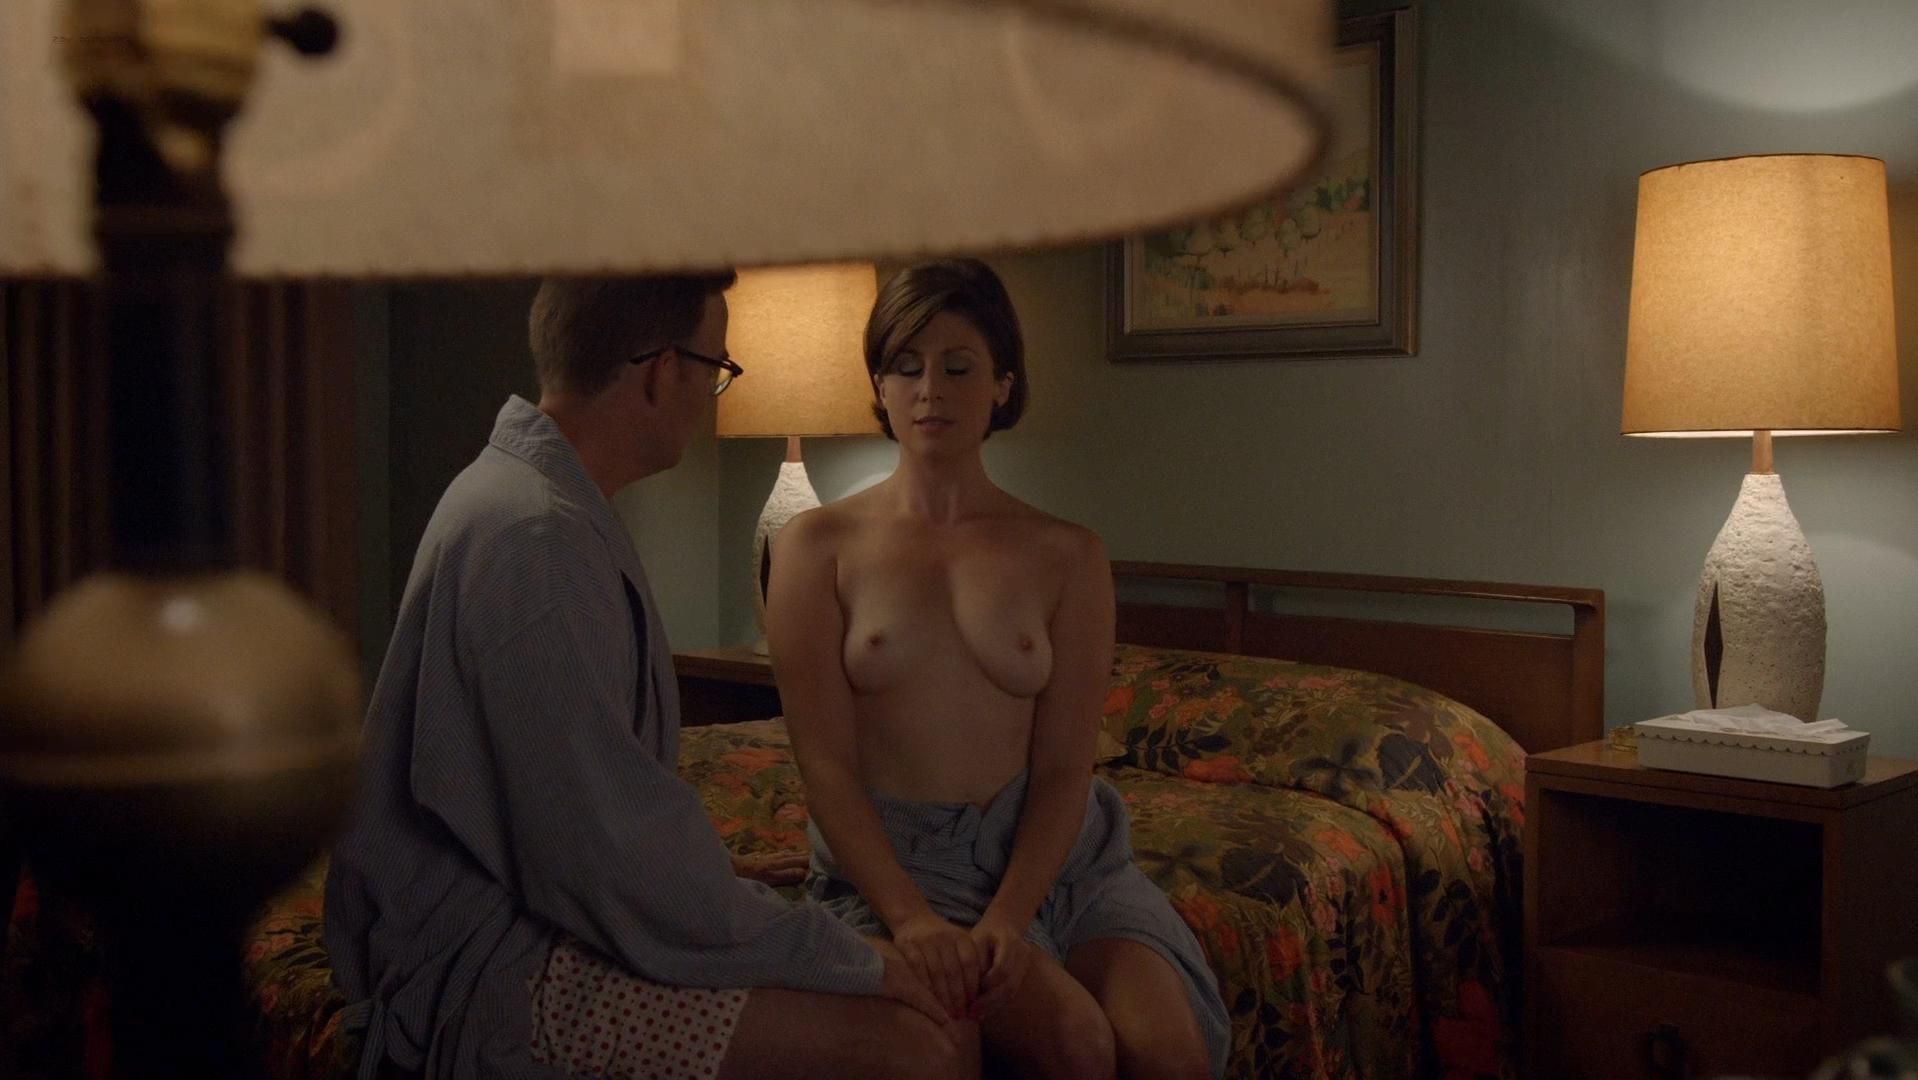 Emily Kinney nude, Sascha Alexander nude, Isabelle Fuhrman sexy - Masters of Sex s03e10 (2015)